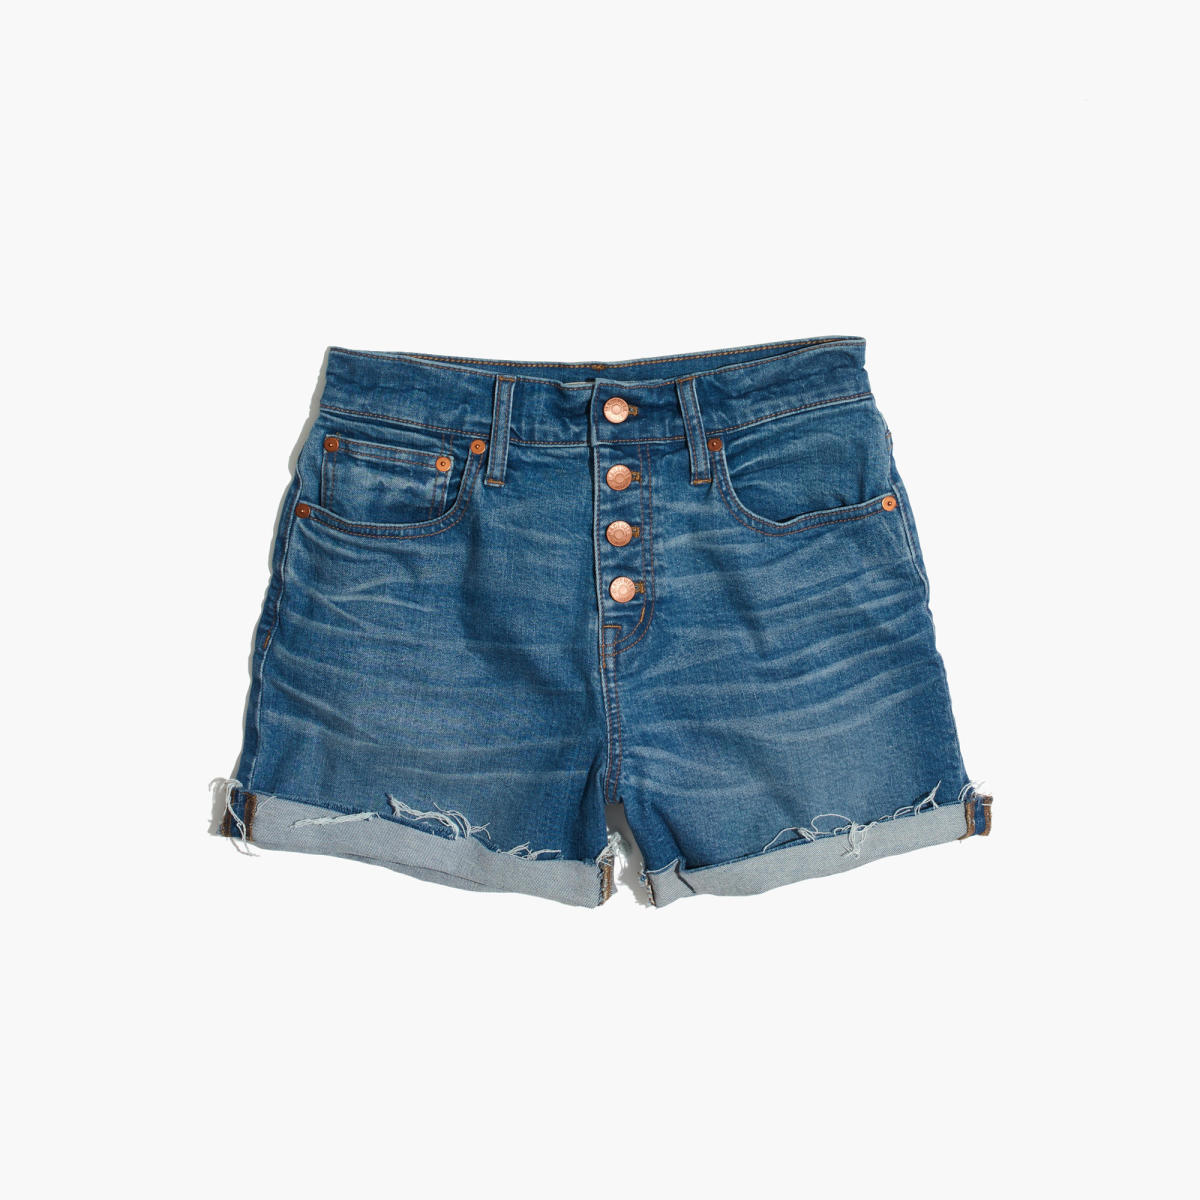 Madewell high-rise denim boyshorts: button-through edition, $74.50, available at Madewell.